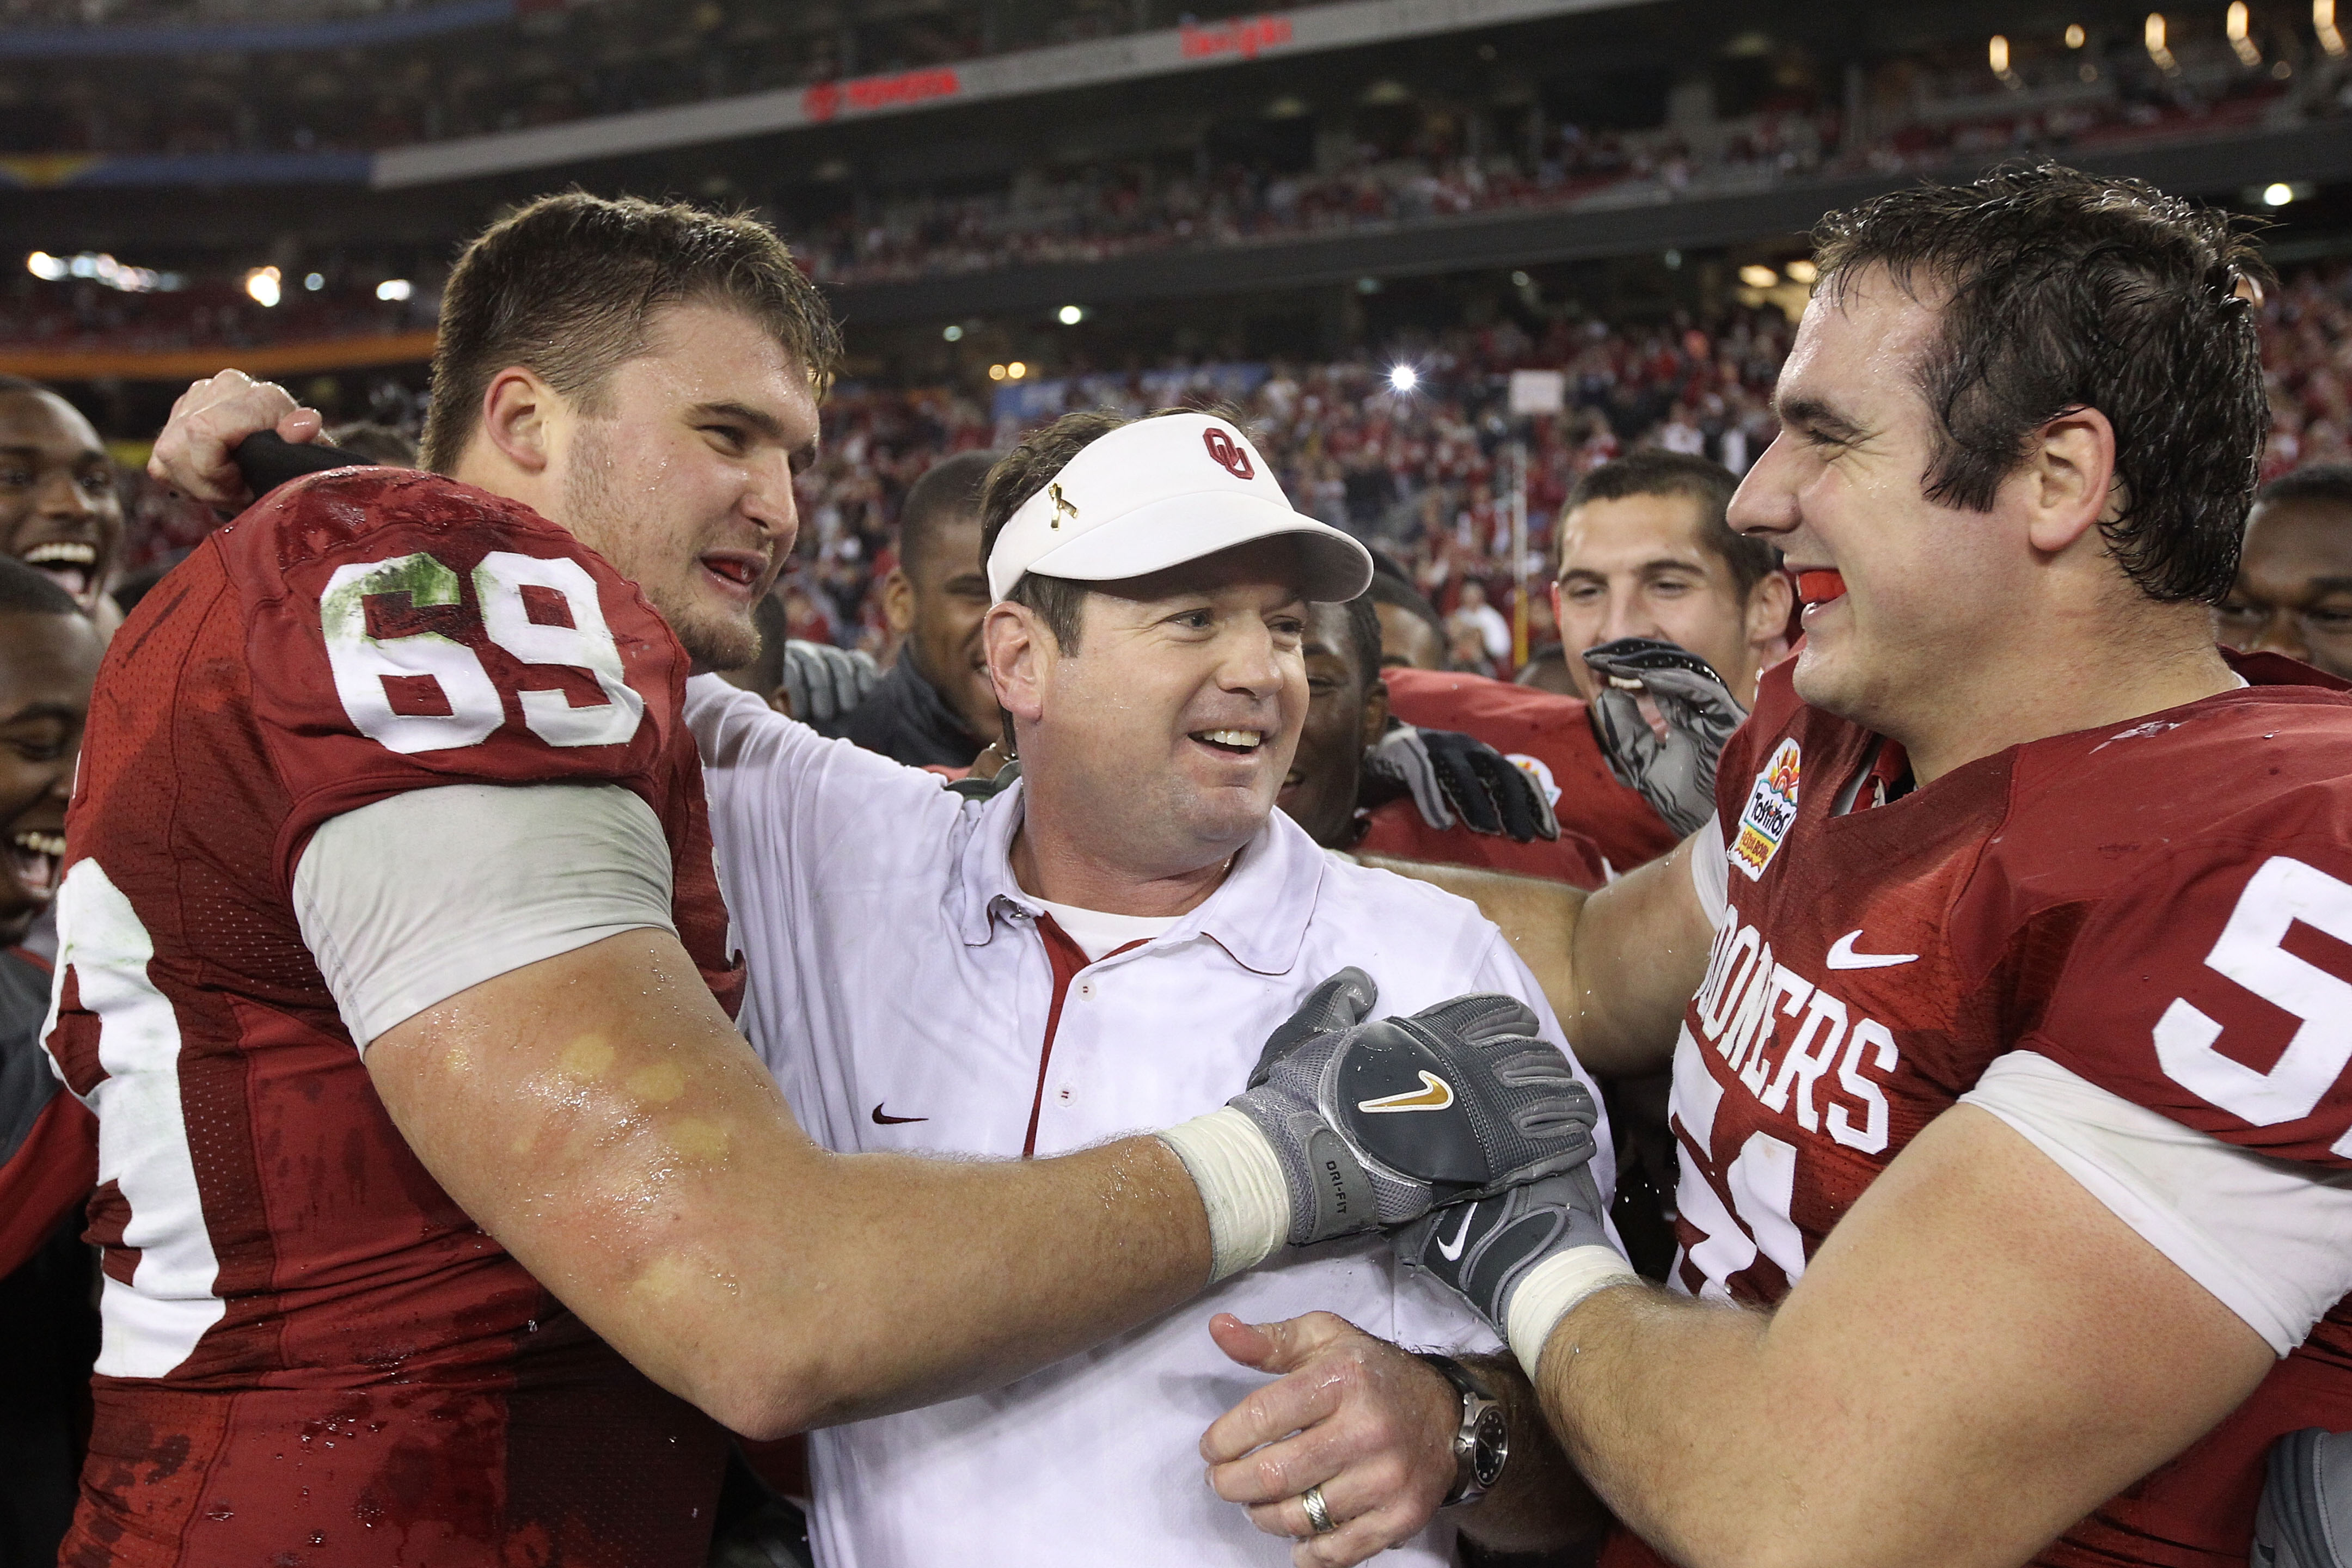 GLENDALE, AZ - JANUARY 01:  Head coach Bob Stoops is hugged by Eric Mensik #69 and Brian Lepak #51 late in the fourth quarter before the Sooners 48-20 victory against the Connecticut Huskies during the Tostitos Fiesta Bowl at the Universtity of Phoenix St